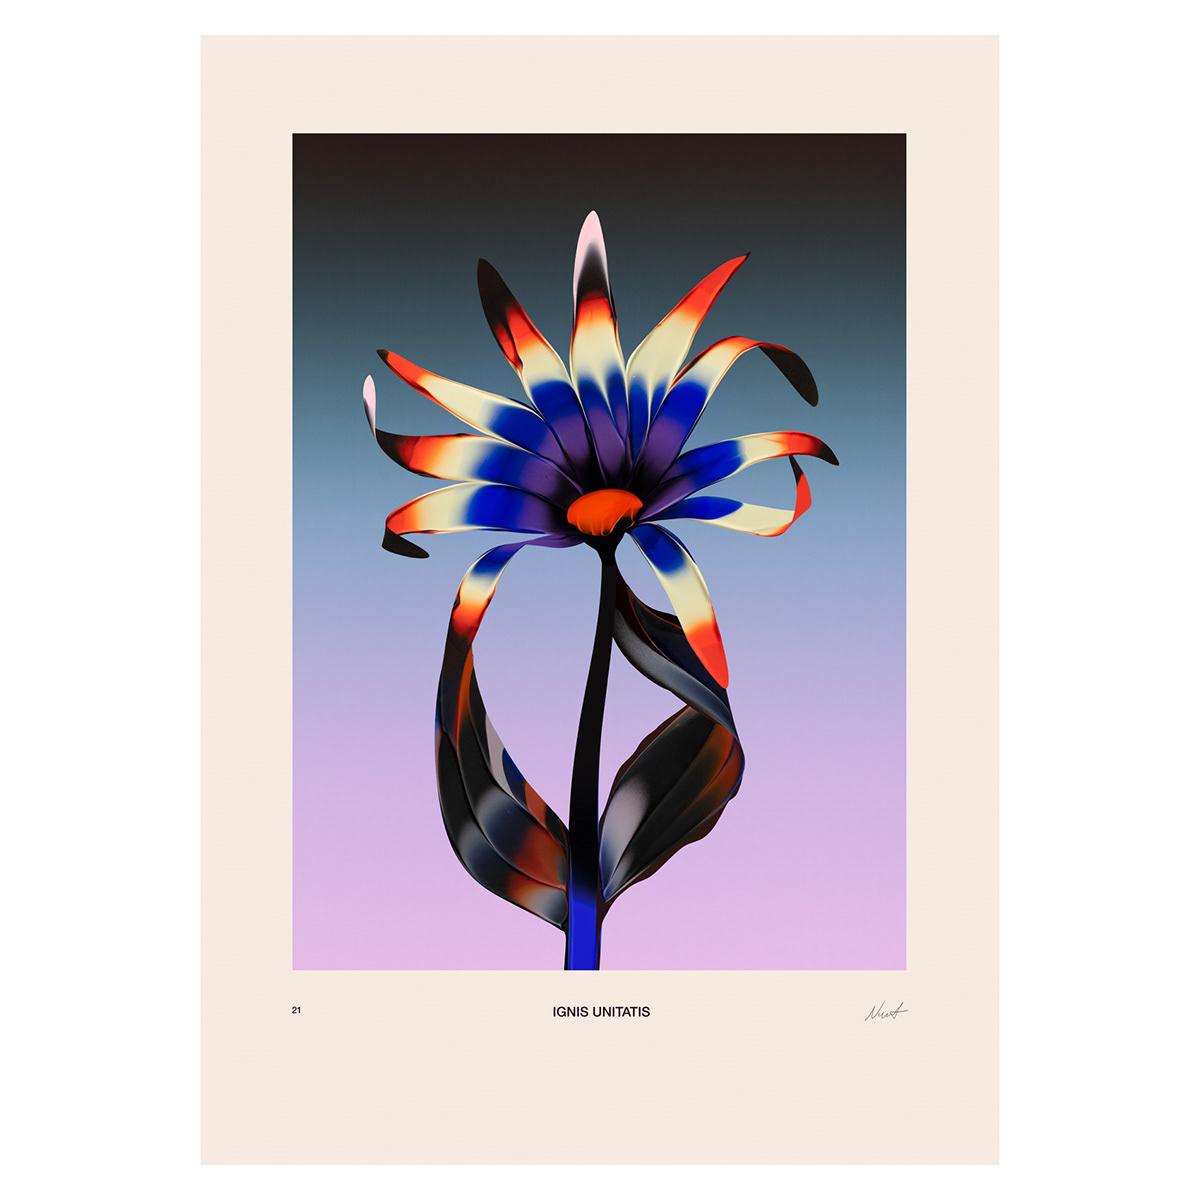 abstract illustration of a flower